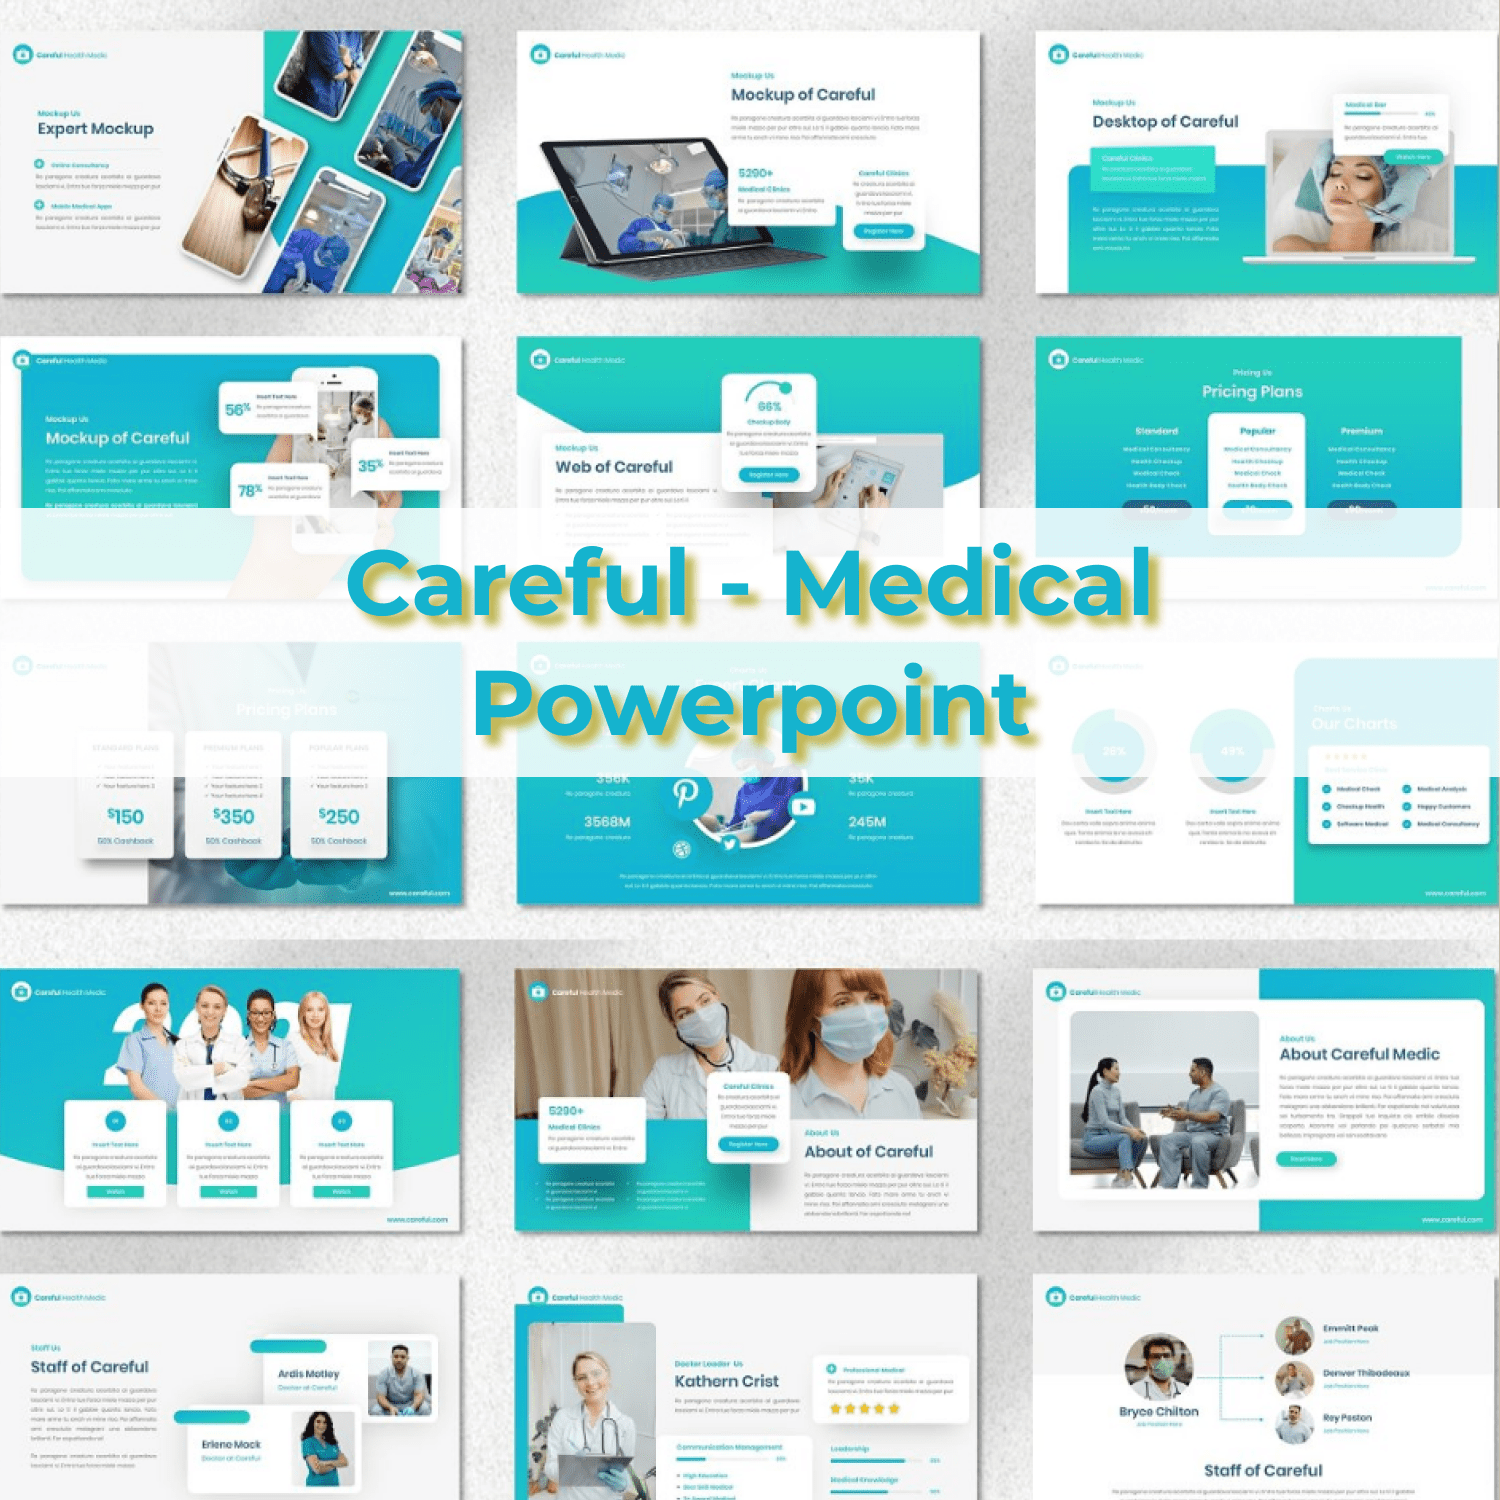 Careful - Medical Powerpoint main cover.